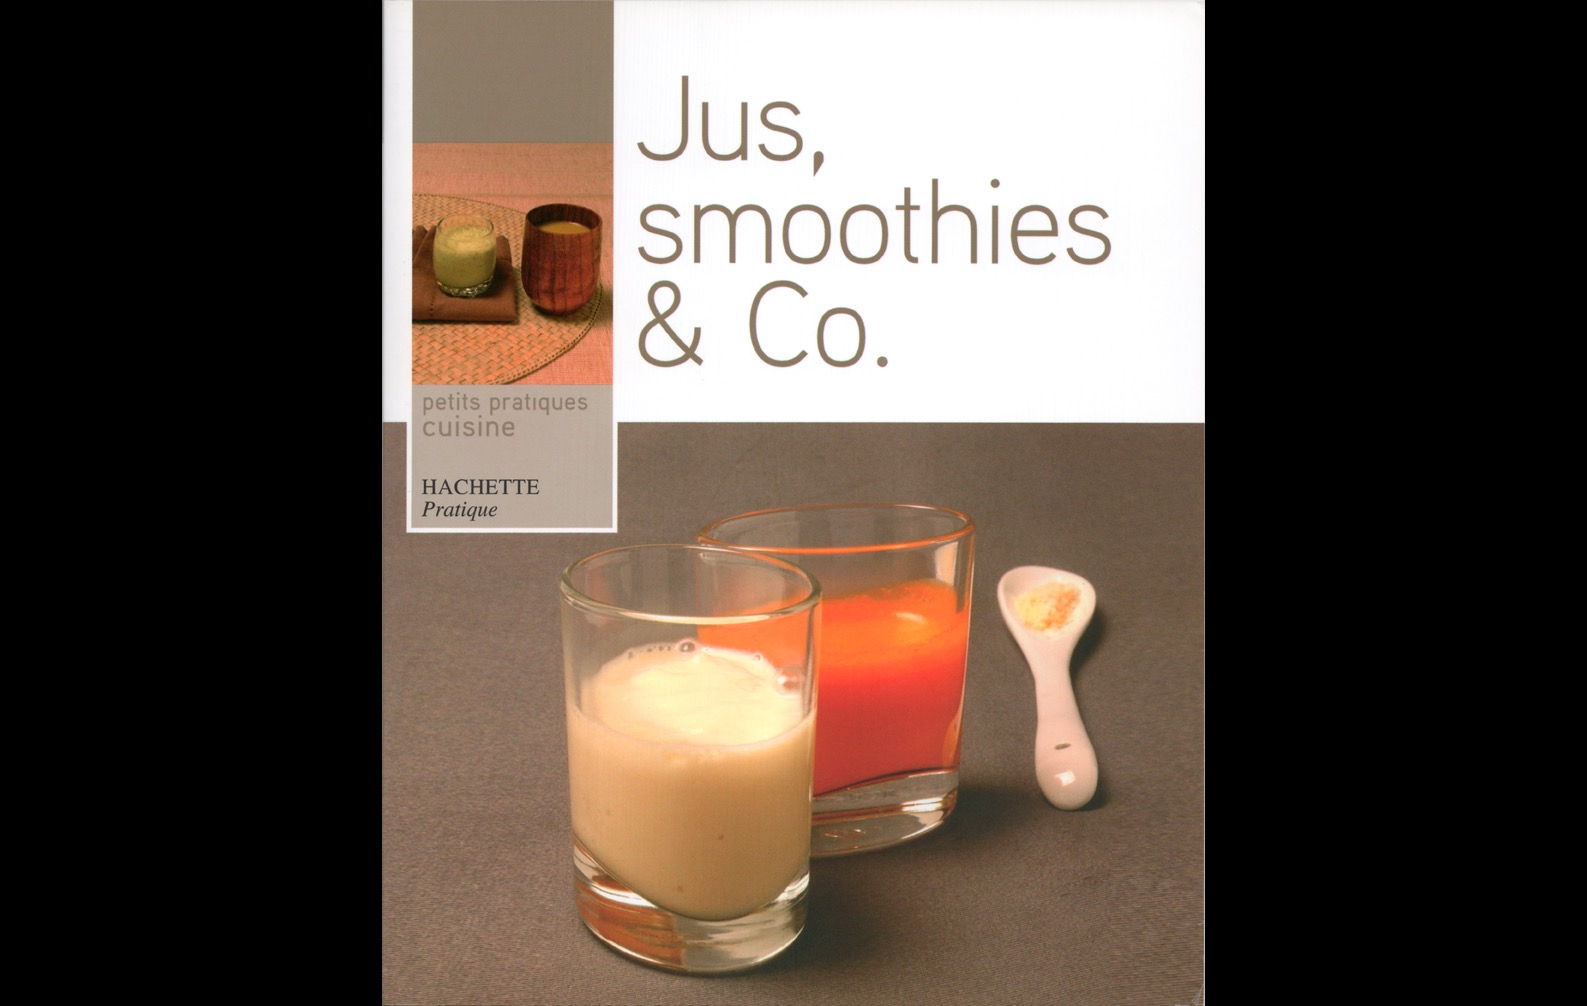 jus-smoothies-and-co-grand